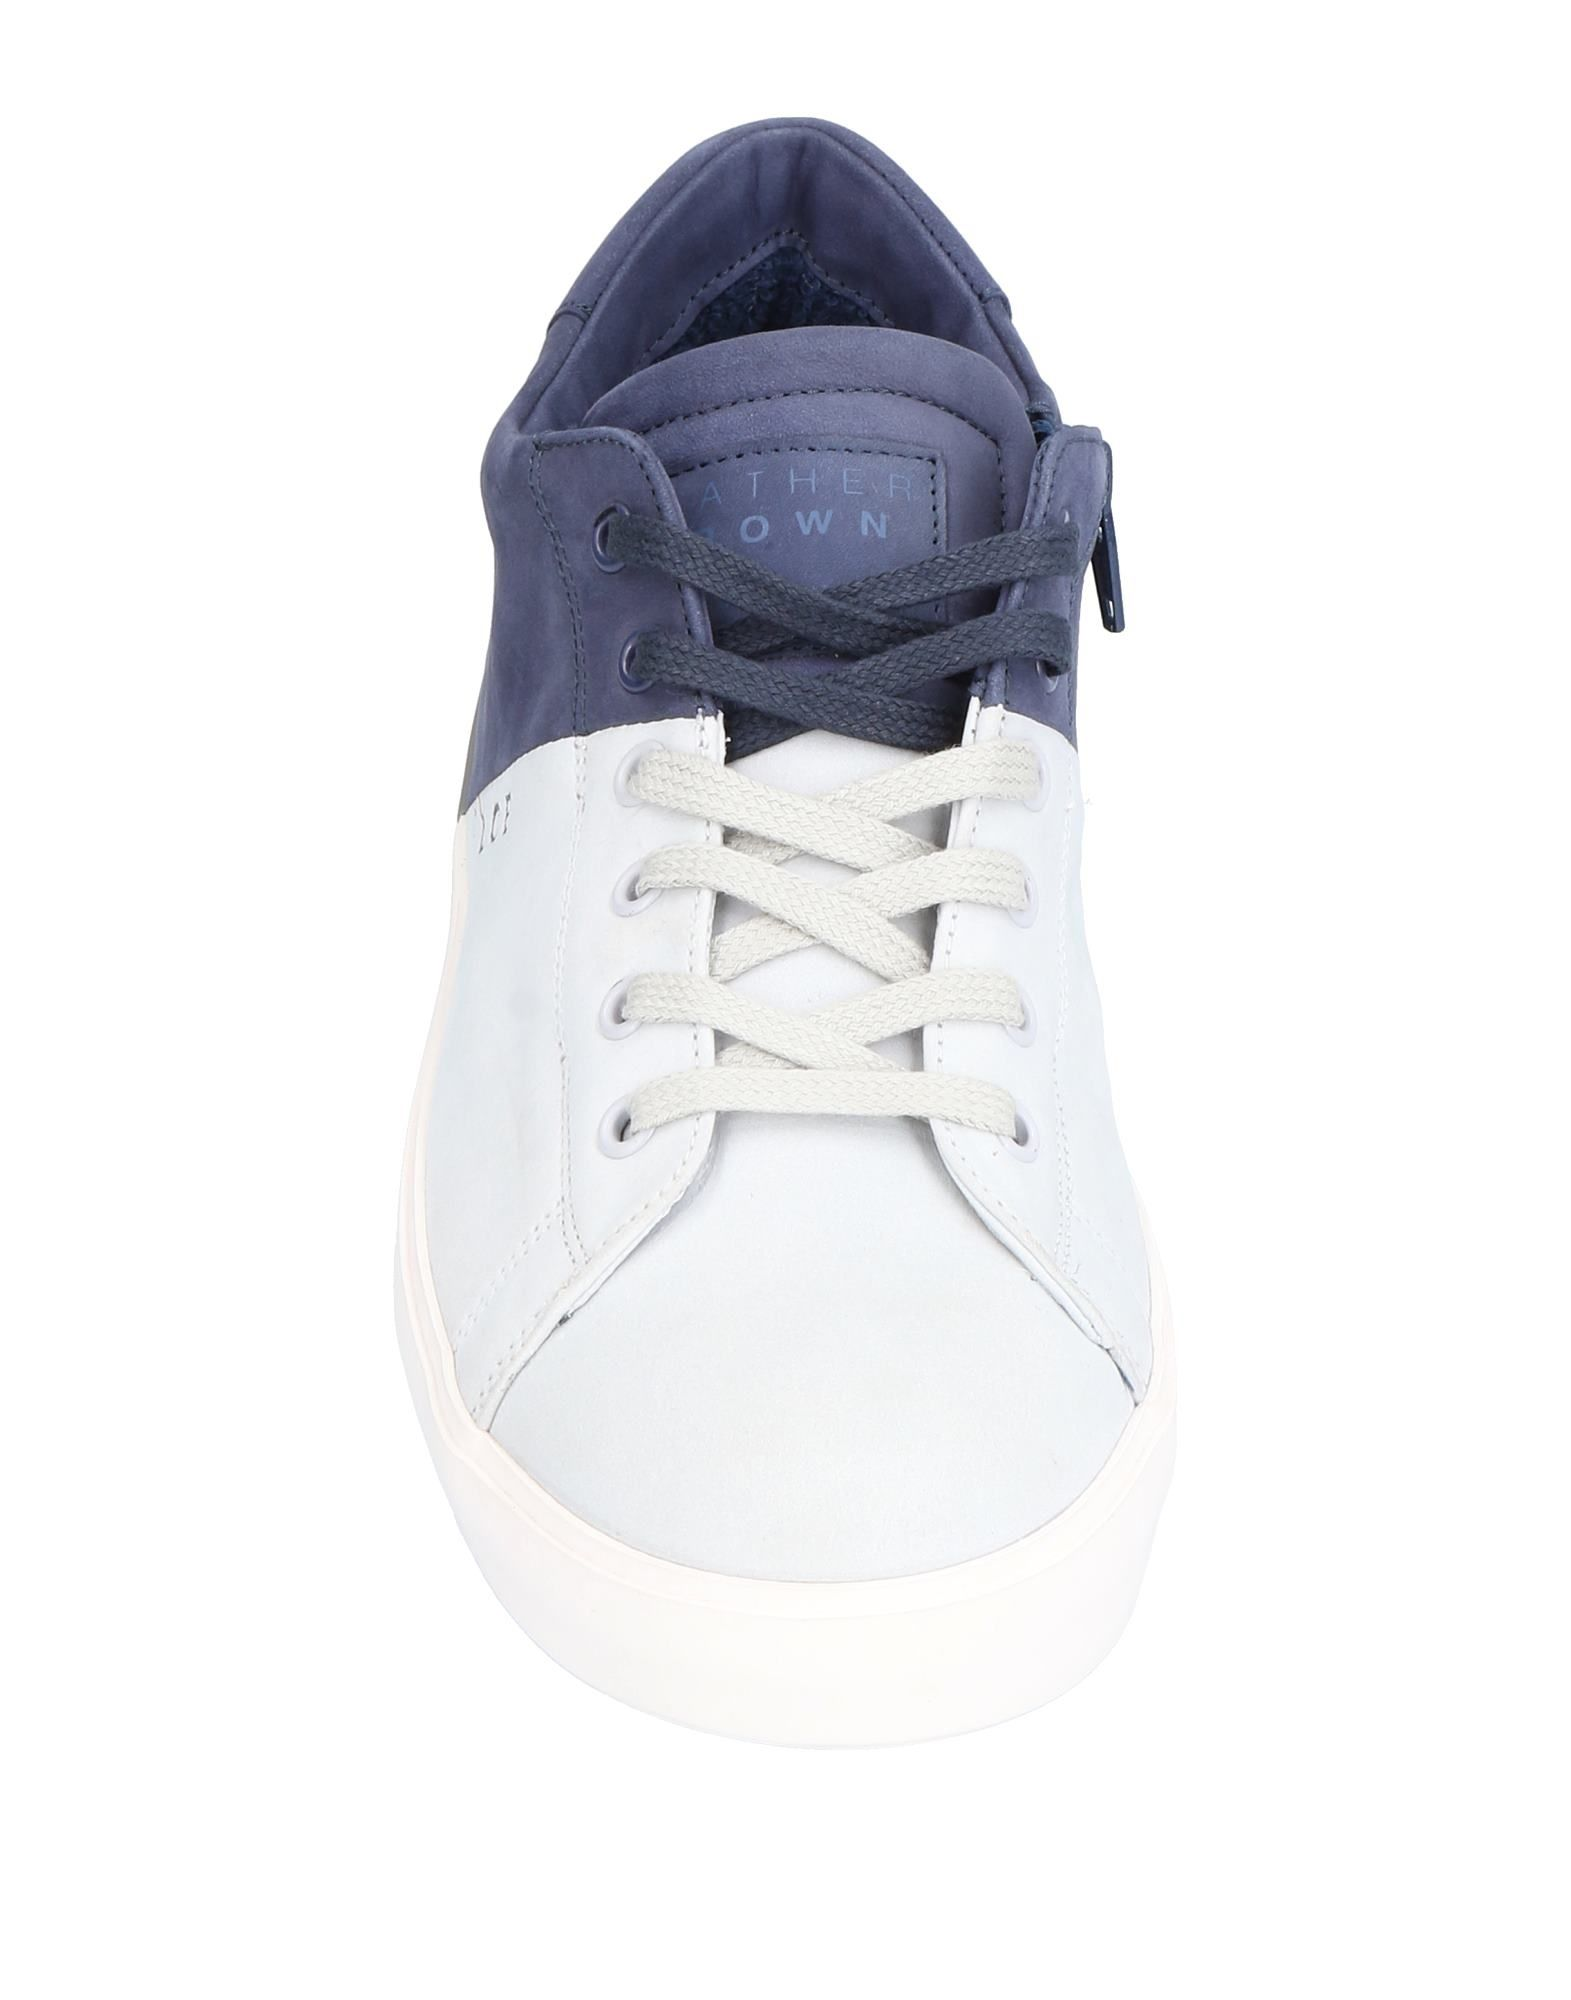 Leather Crown Crown Leather Sneakers Herren  11500766OL 96e79e